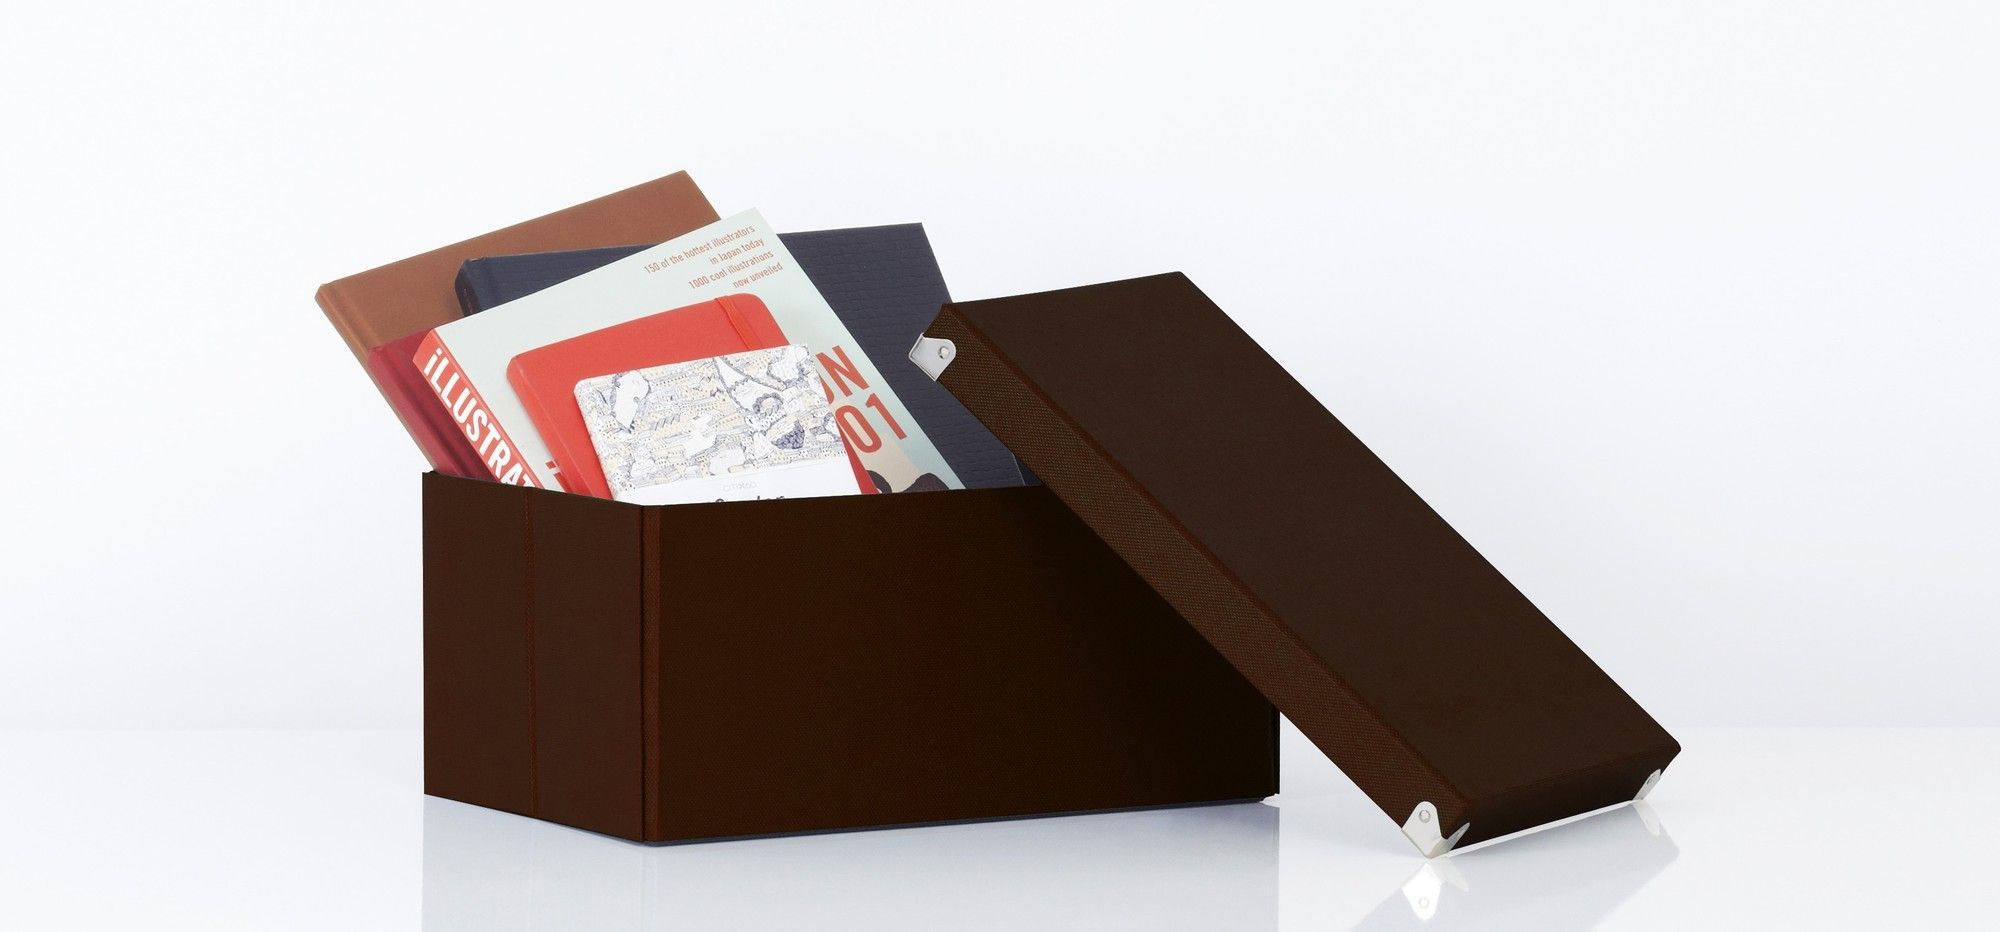 Decorative Document Storage Boxes Pop N' Store Medium Document Box  Products  Pinterest  Products